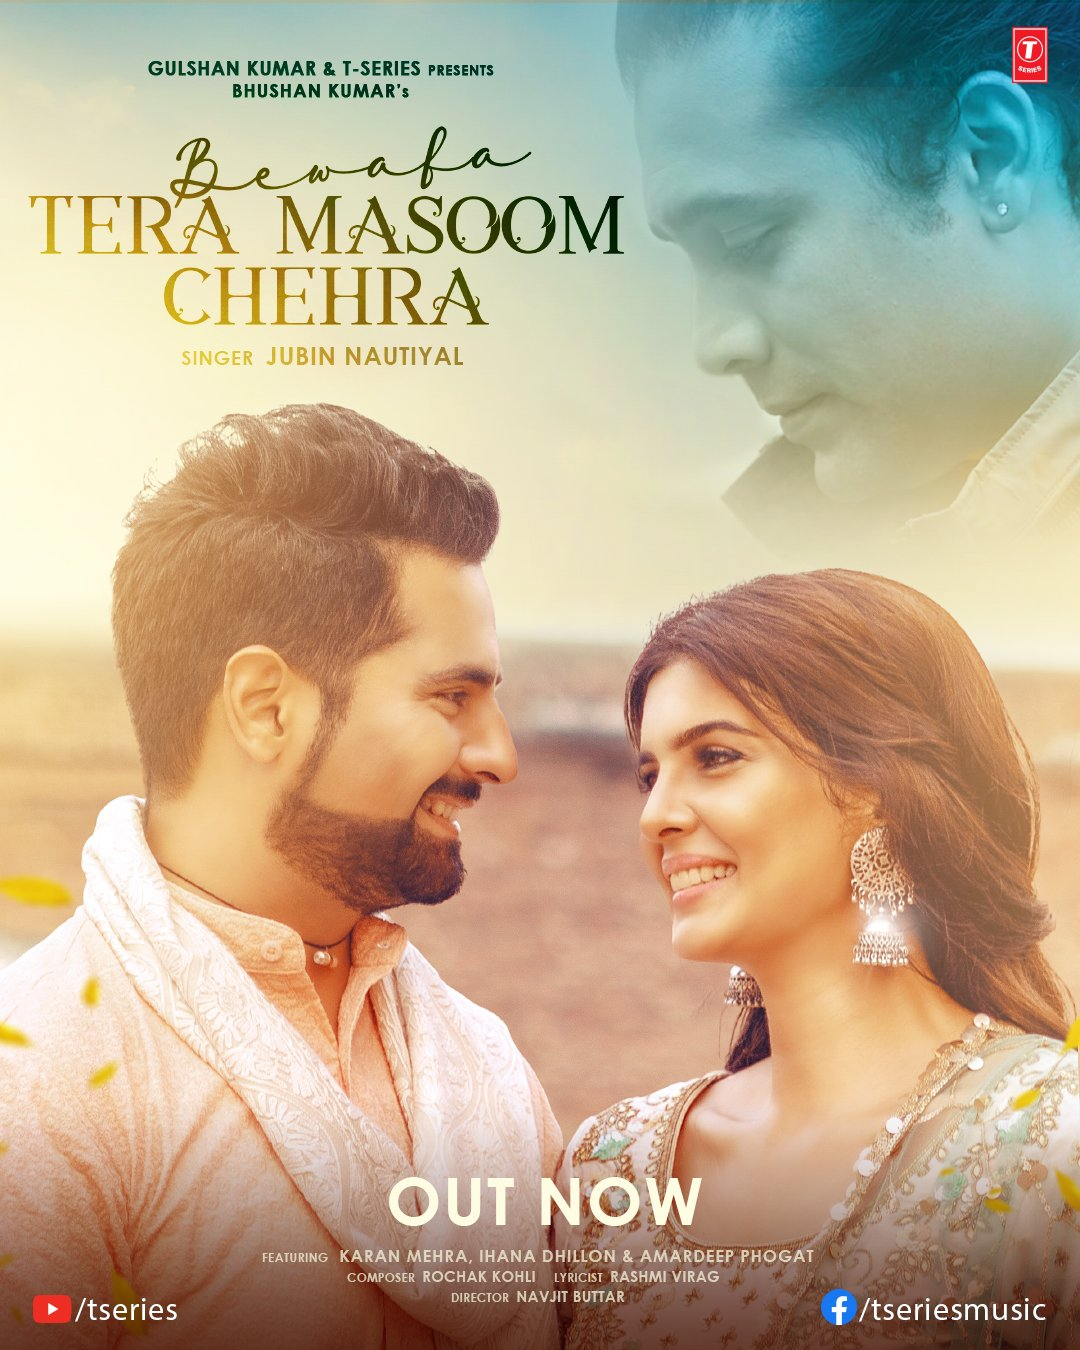 Bewafa Tera Masoom Chehra By Jubin Nautiyal 2020 Hindi Music Video 1080p HDRip 49MB Download